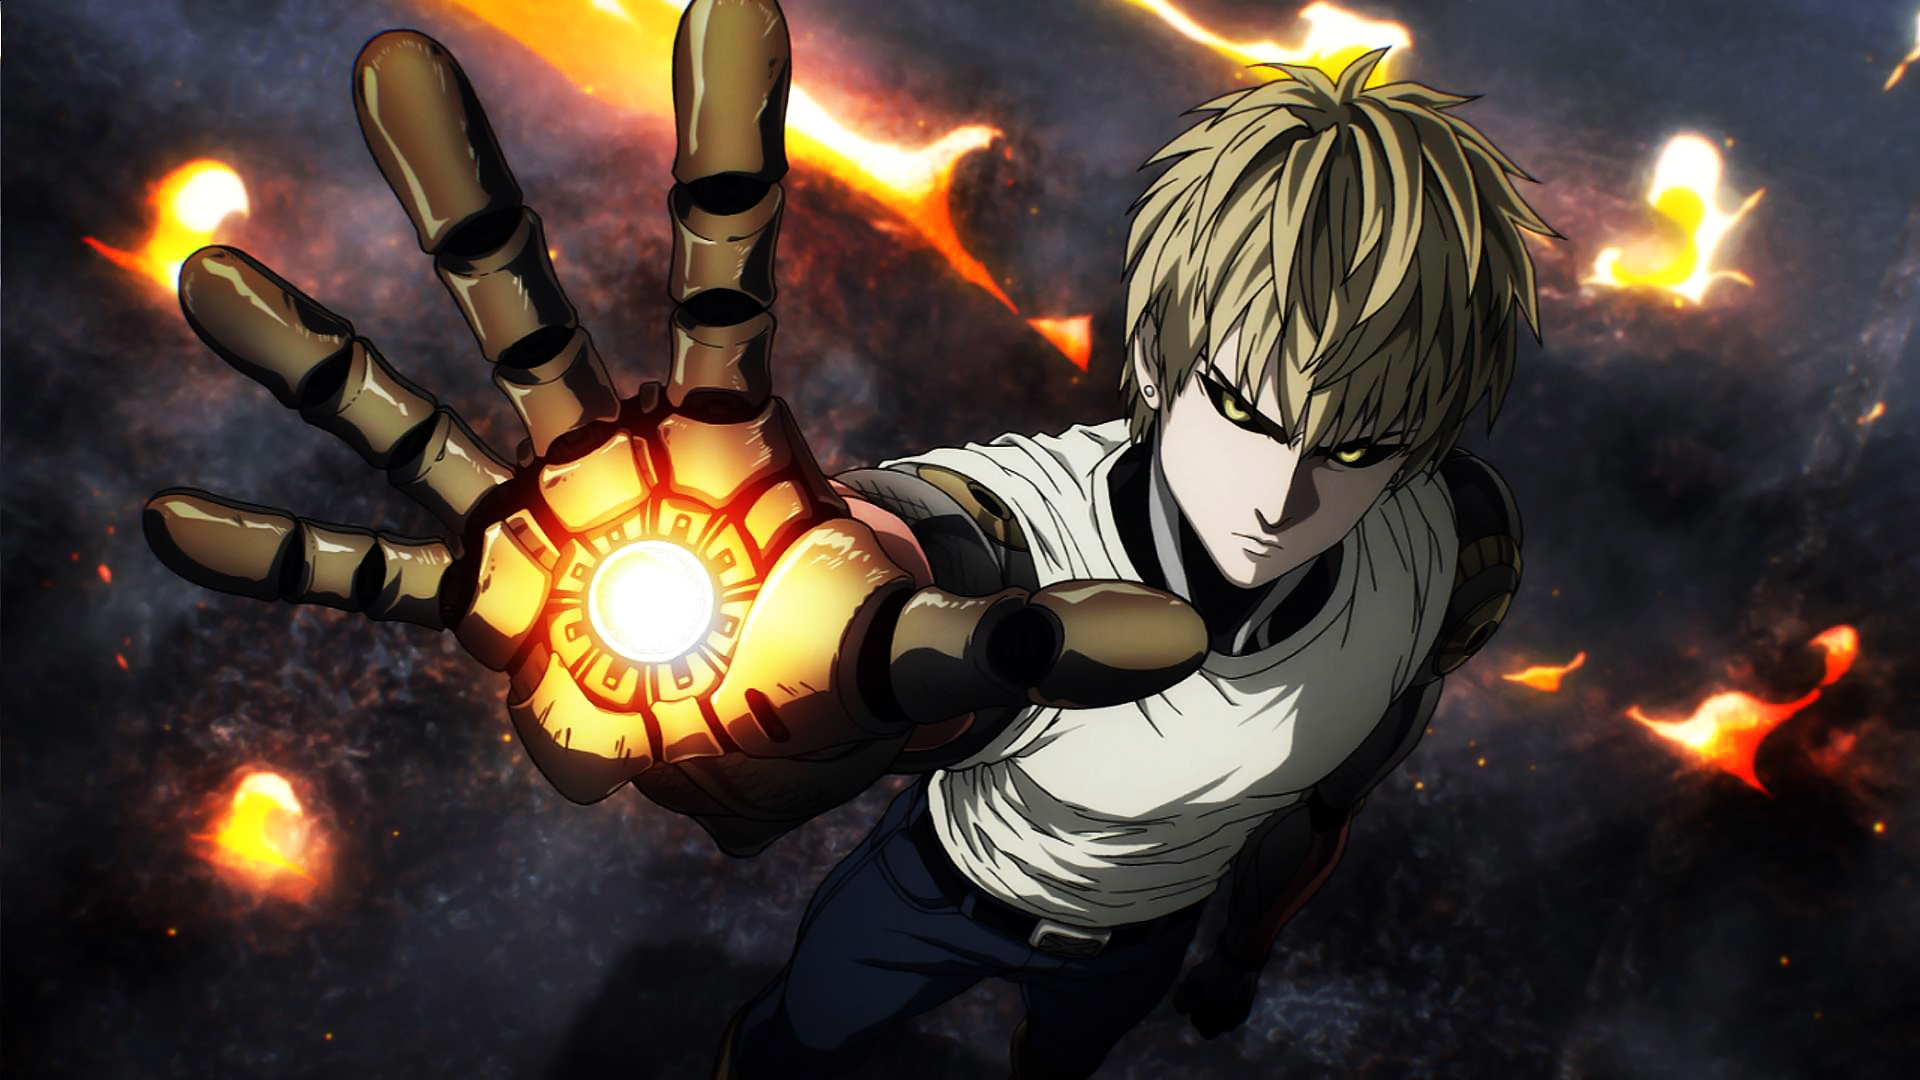 94 Genos (One-Punch Man) HD Wallpapers